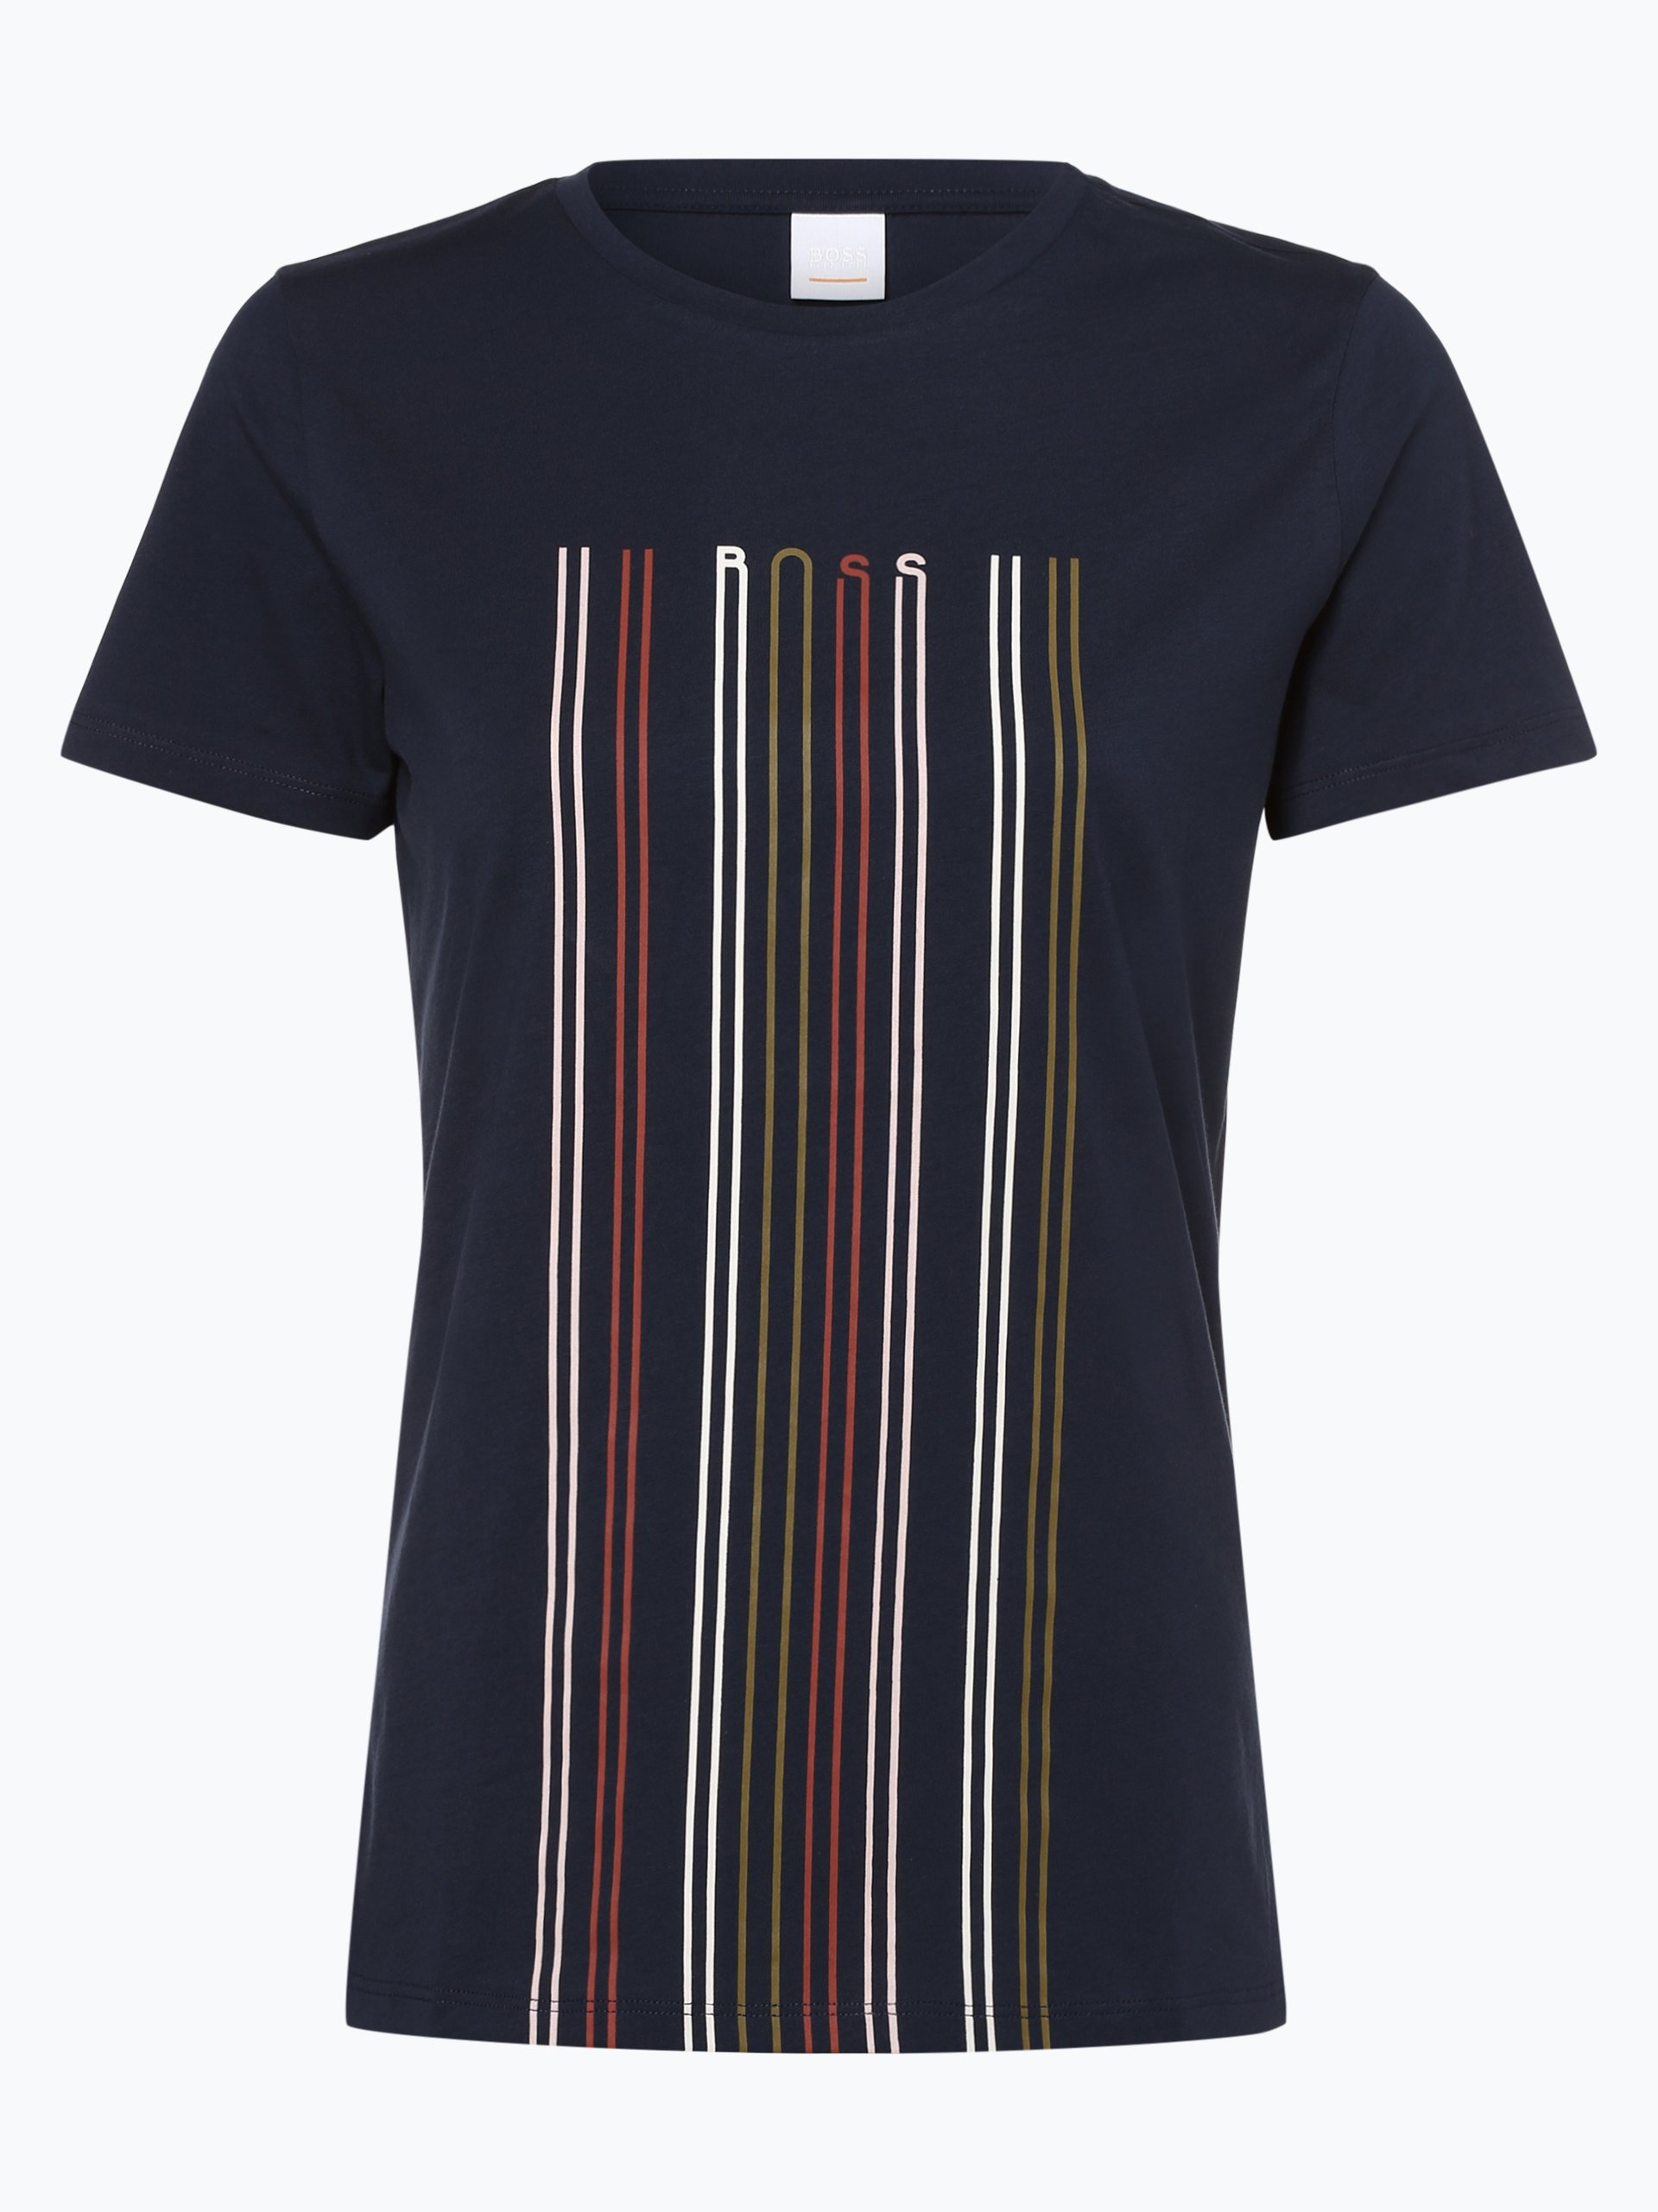 BOSS Casual Damen T-Shirt - Teblurred